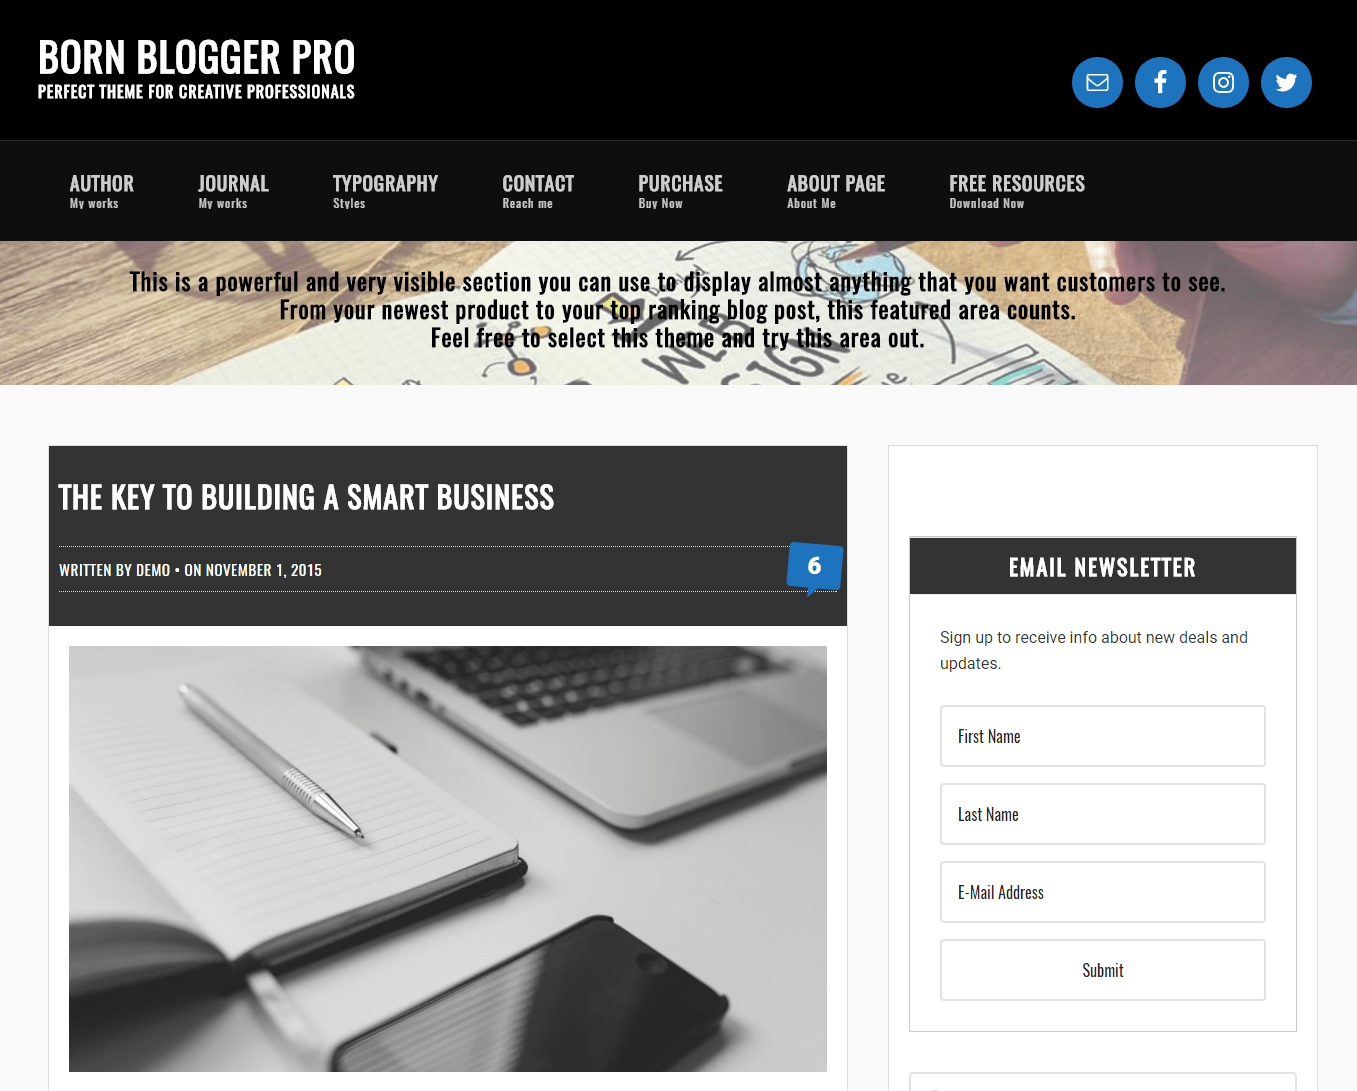 Get a free website with Born Blogger Pro by Abdul Samad Essani on Talenthost